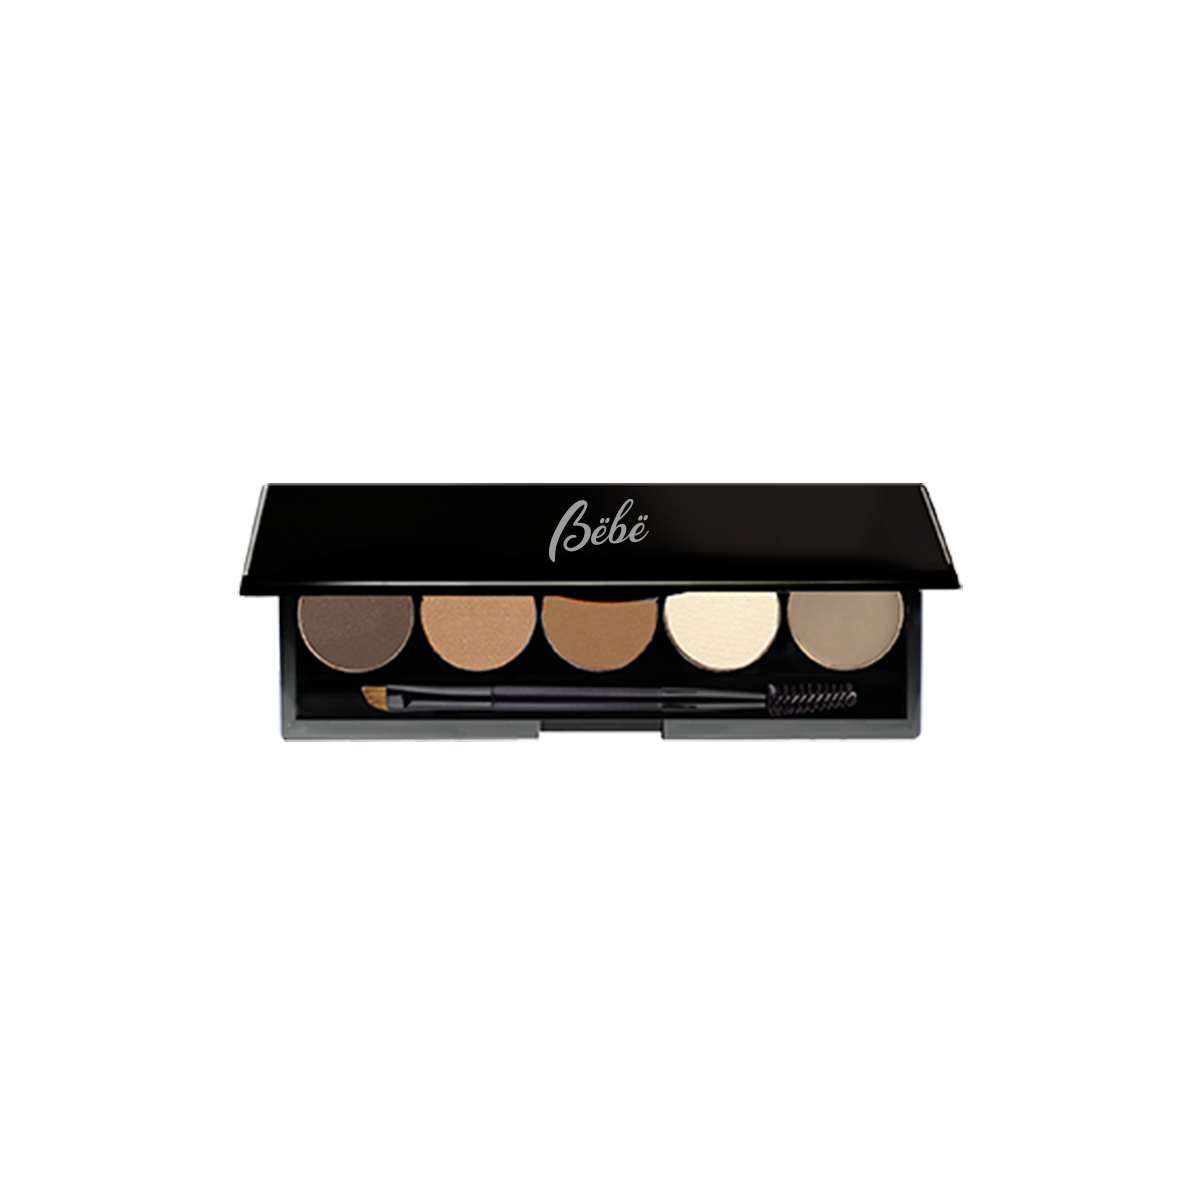 Bebe Brow Powder Pallete